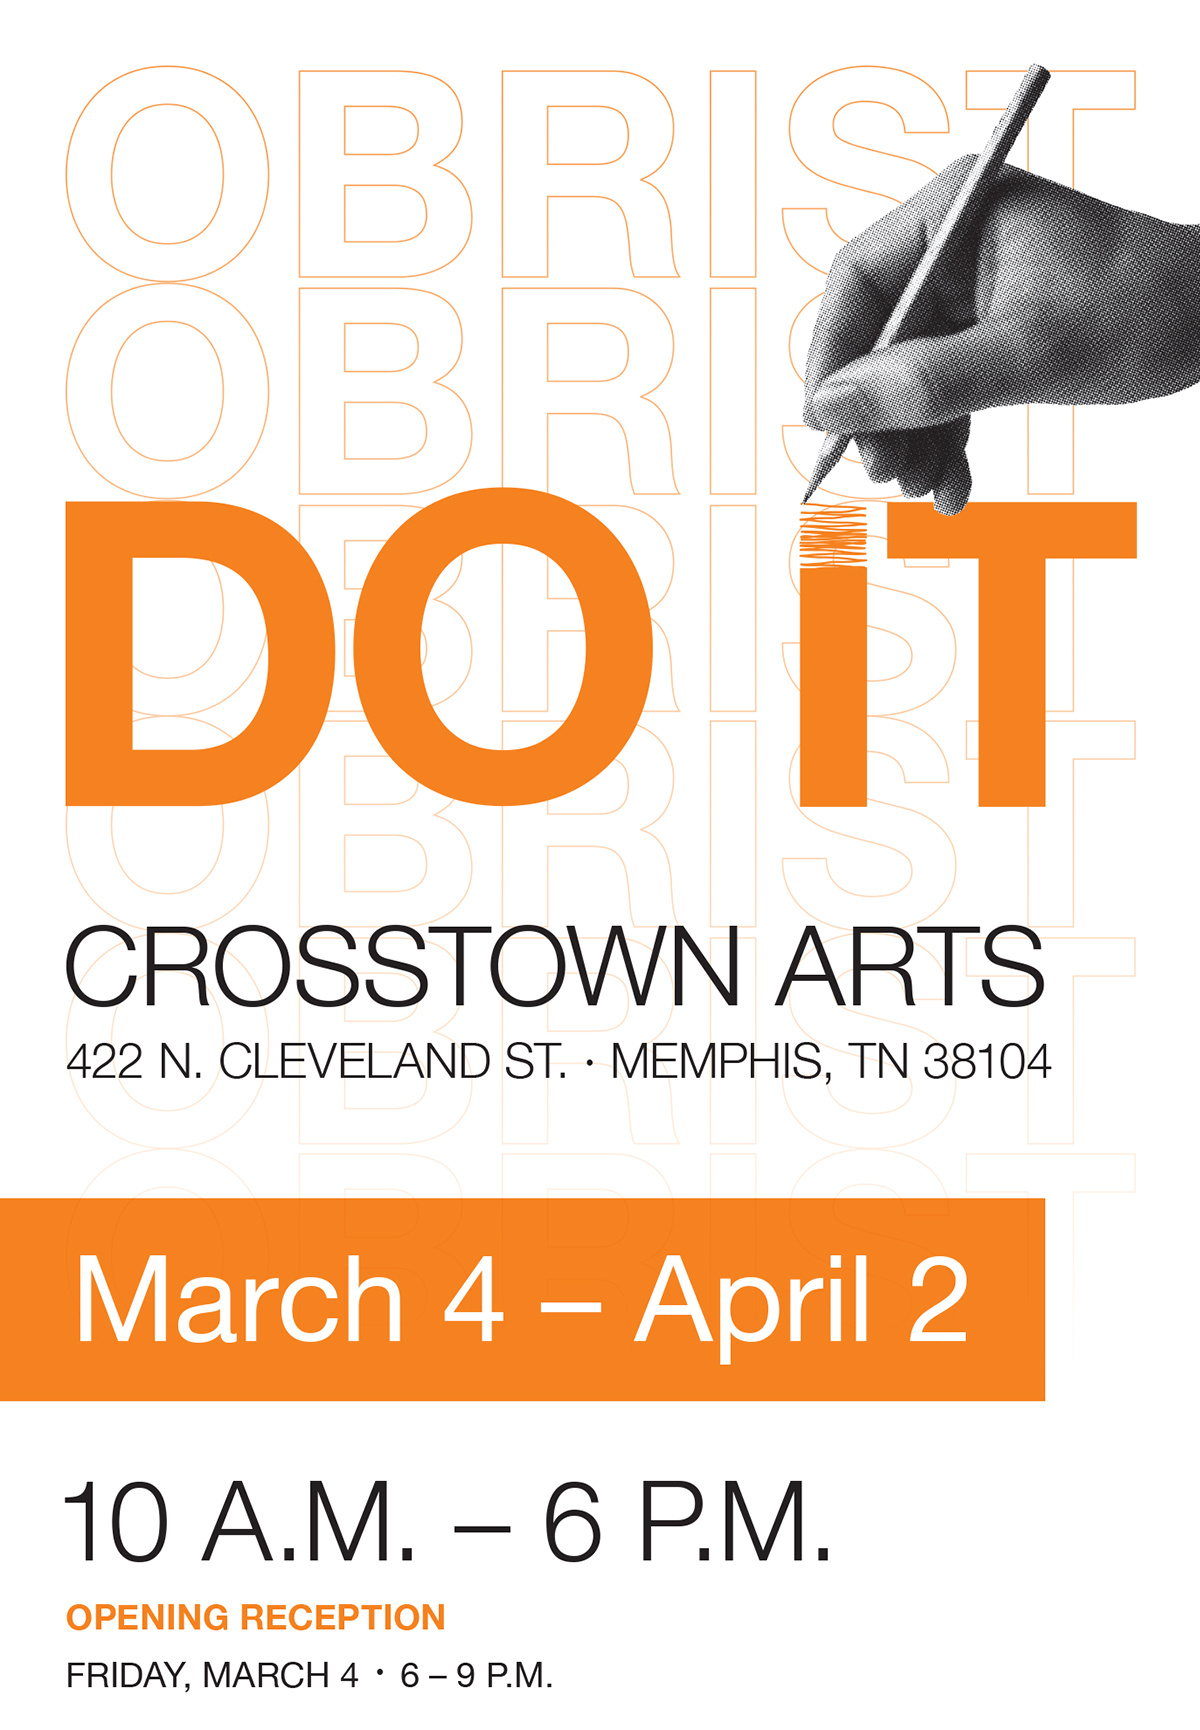 do it at Crosstown Arts